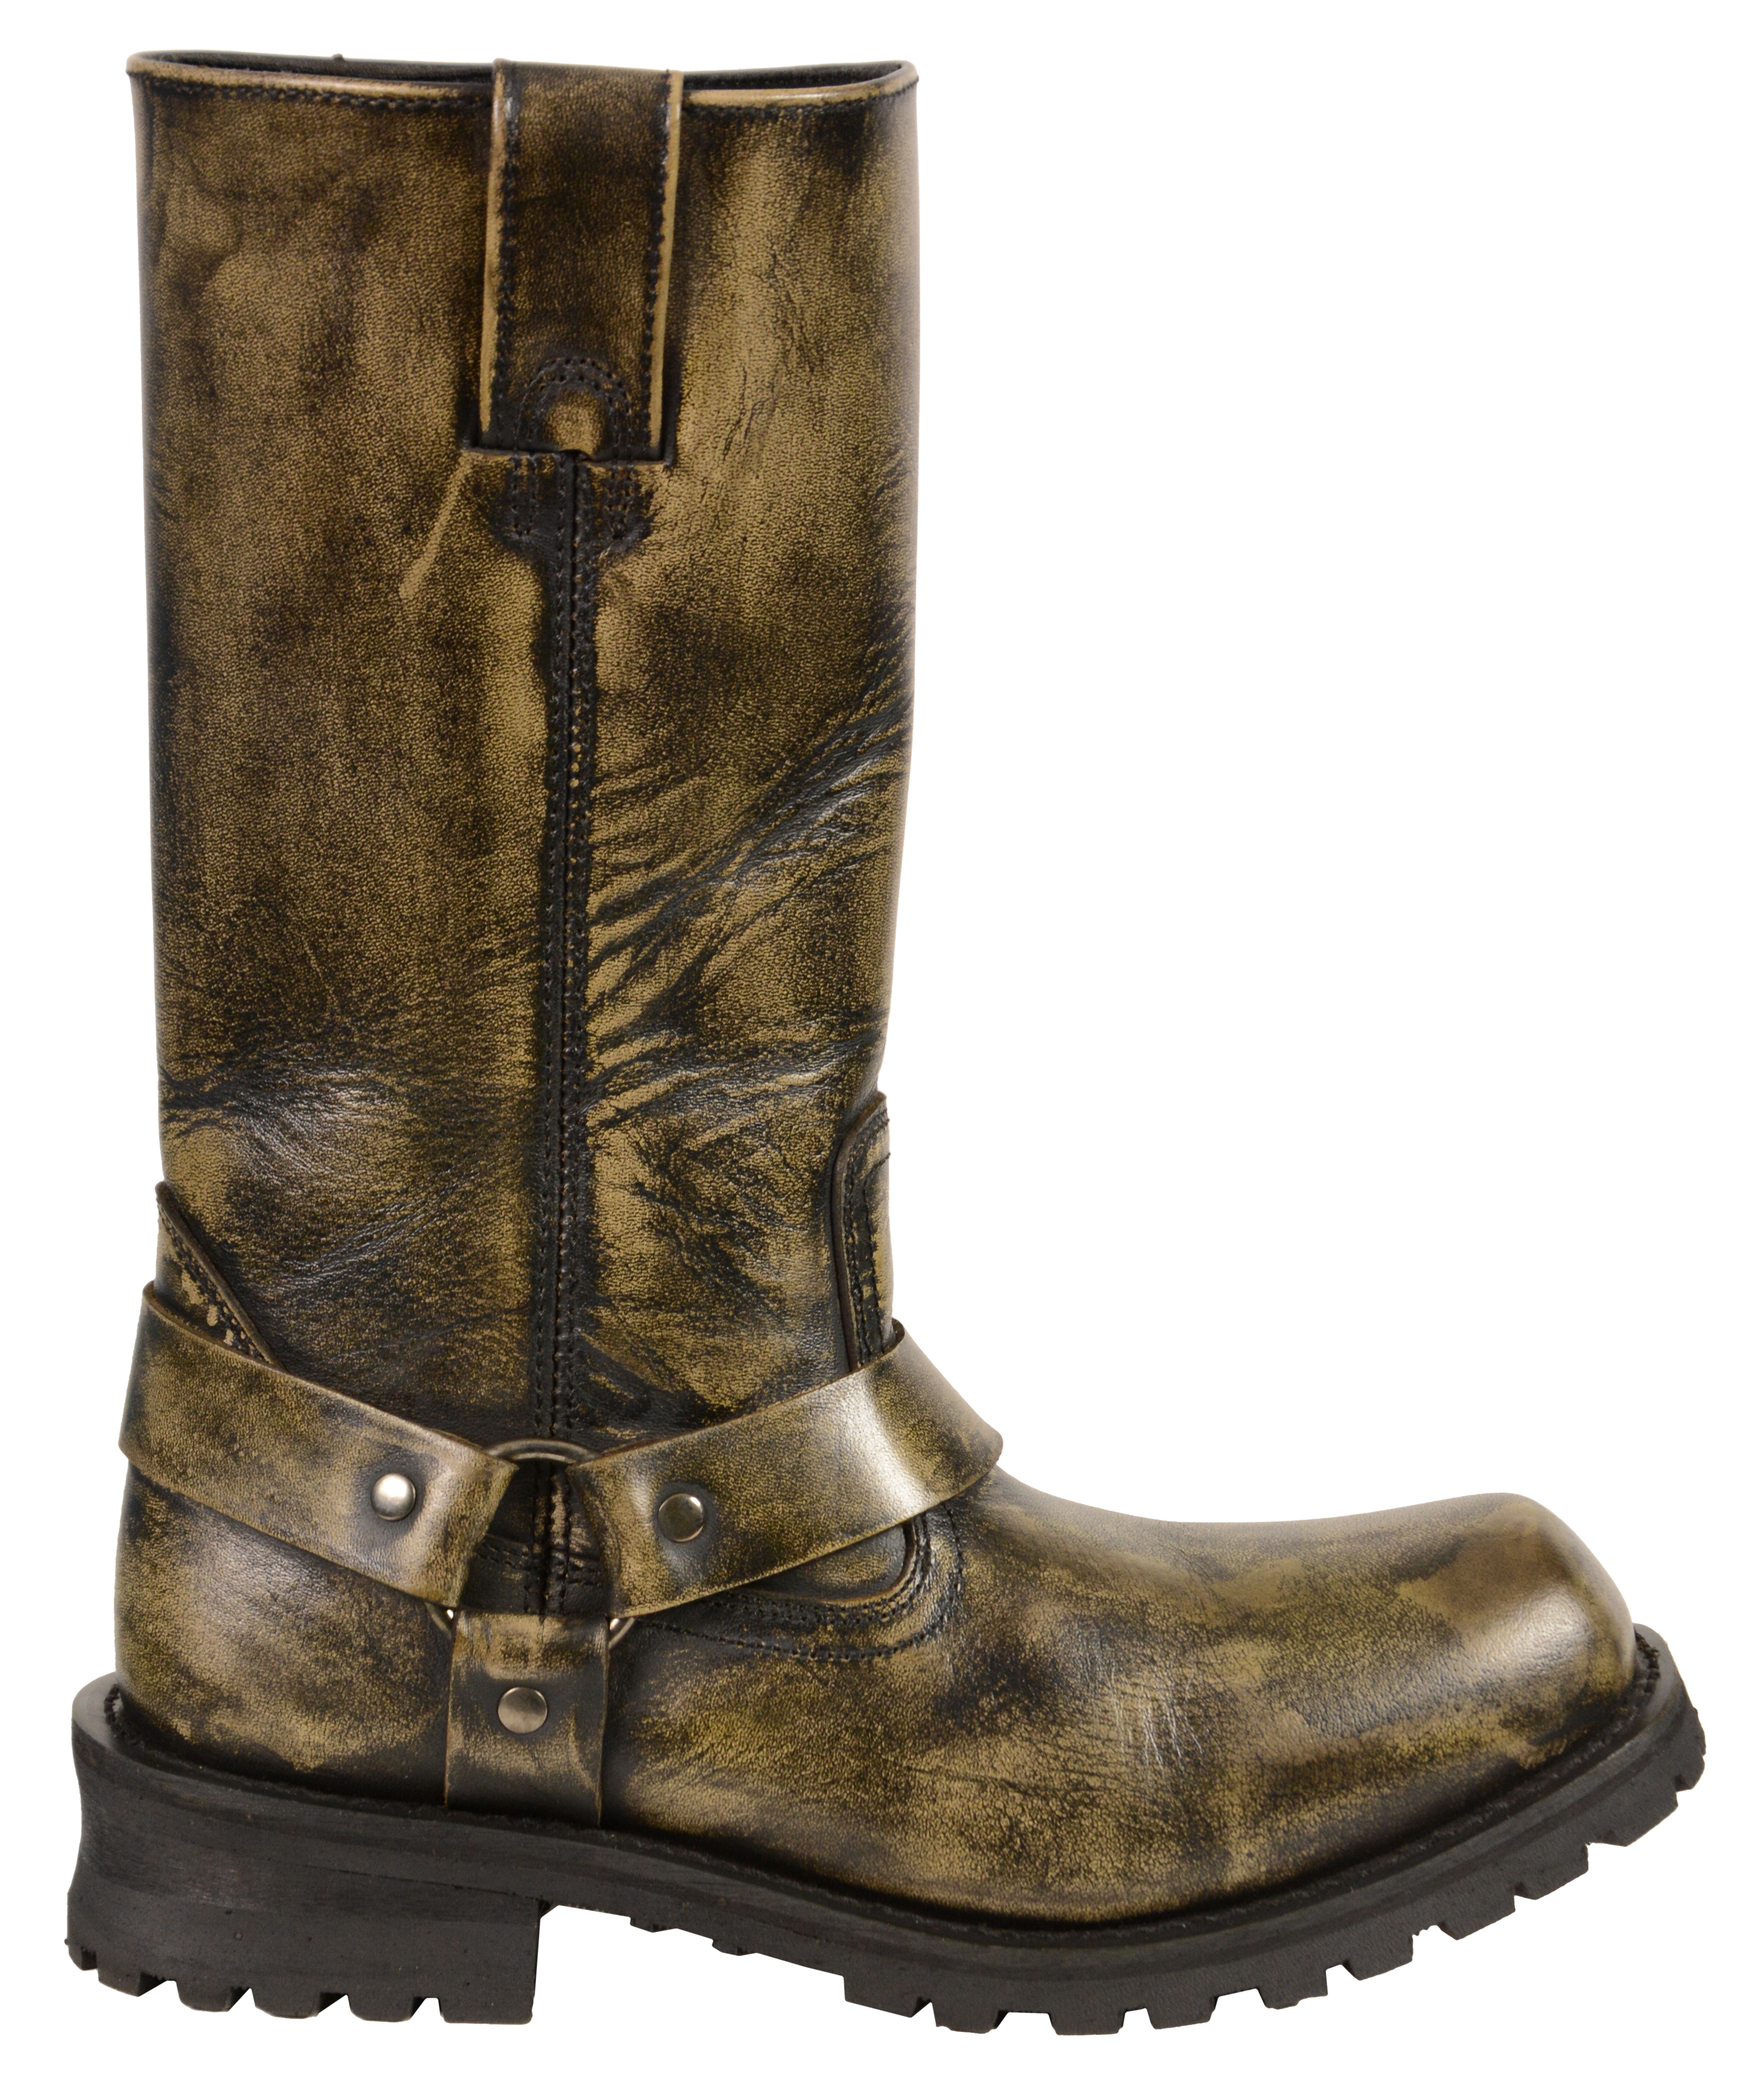 3ef0cf337d0 MEN S MOTORCYCLE GENUINE LEATHER DISTRESSED BROWN 11 INCH BOOT ...